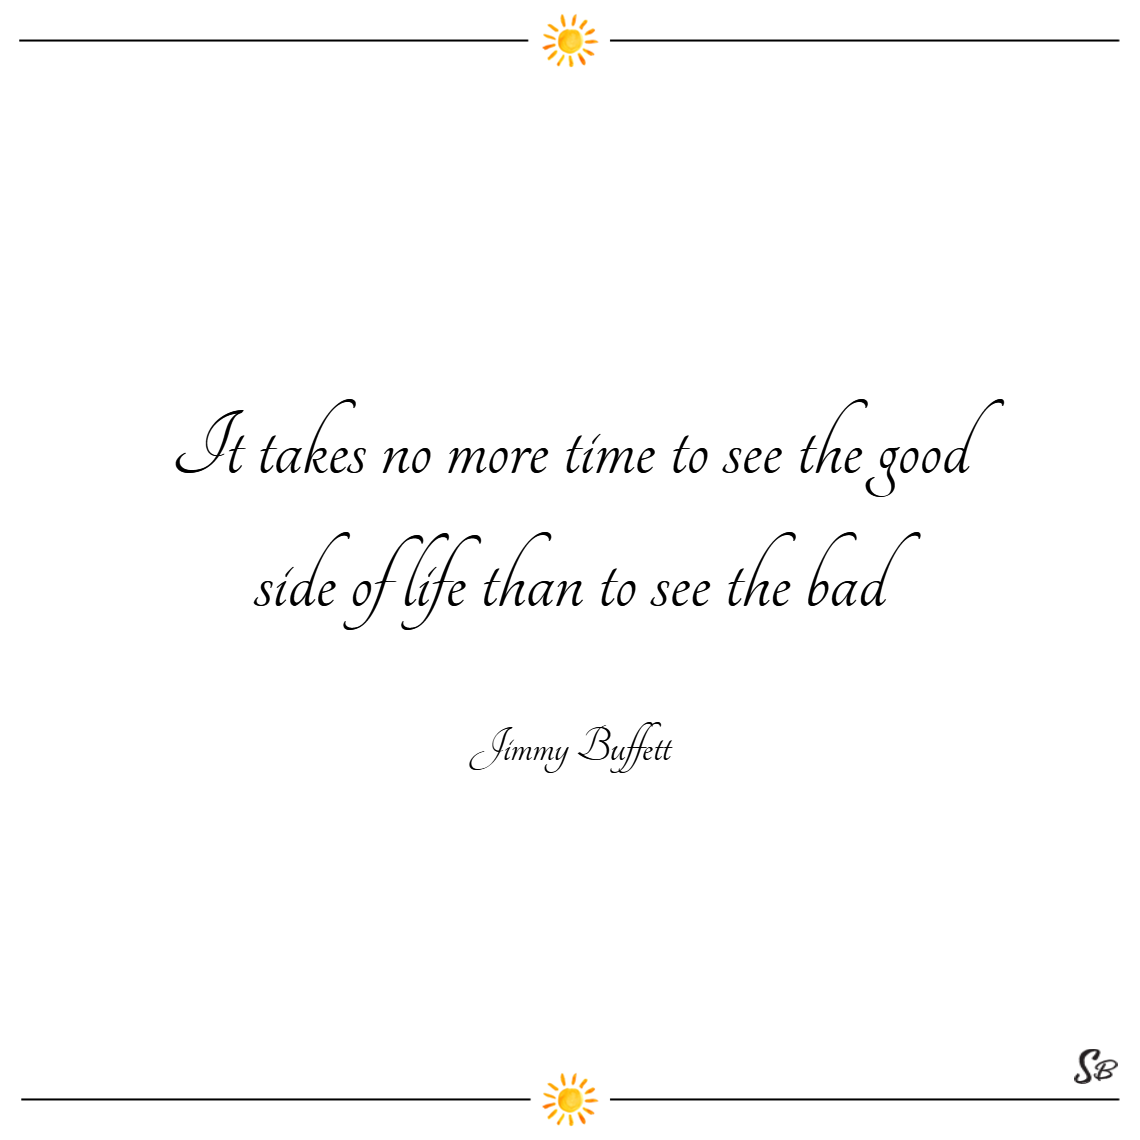 It takes no more time to see the good side of life than to see the bad. – jimmy buffett